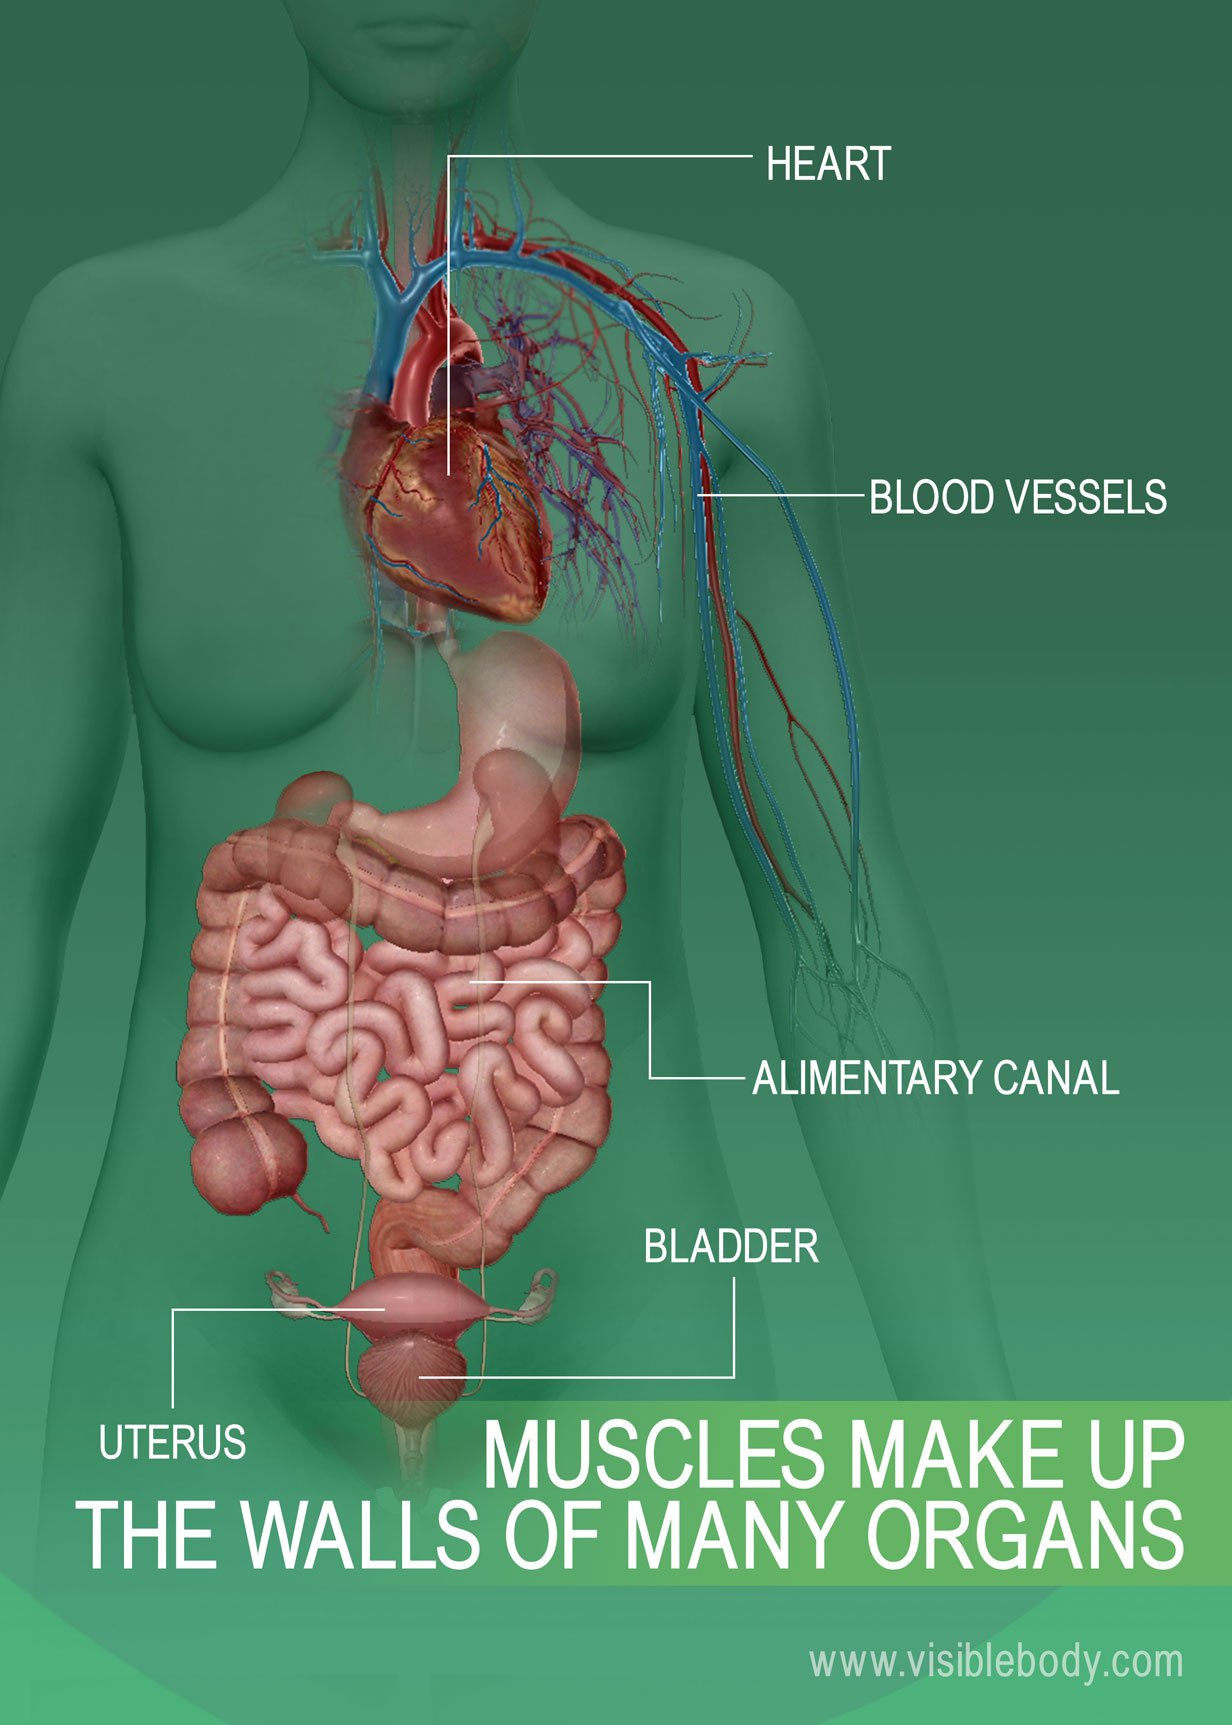 6C-Muscles-Make-Up-The-Walls-of-Many-Organs